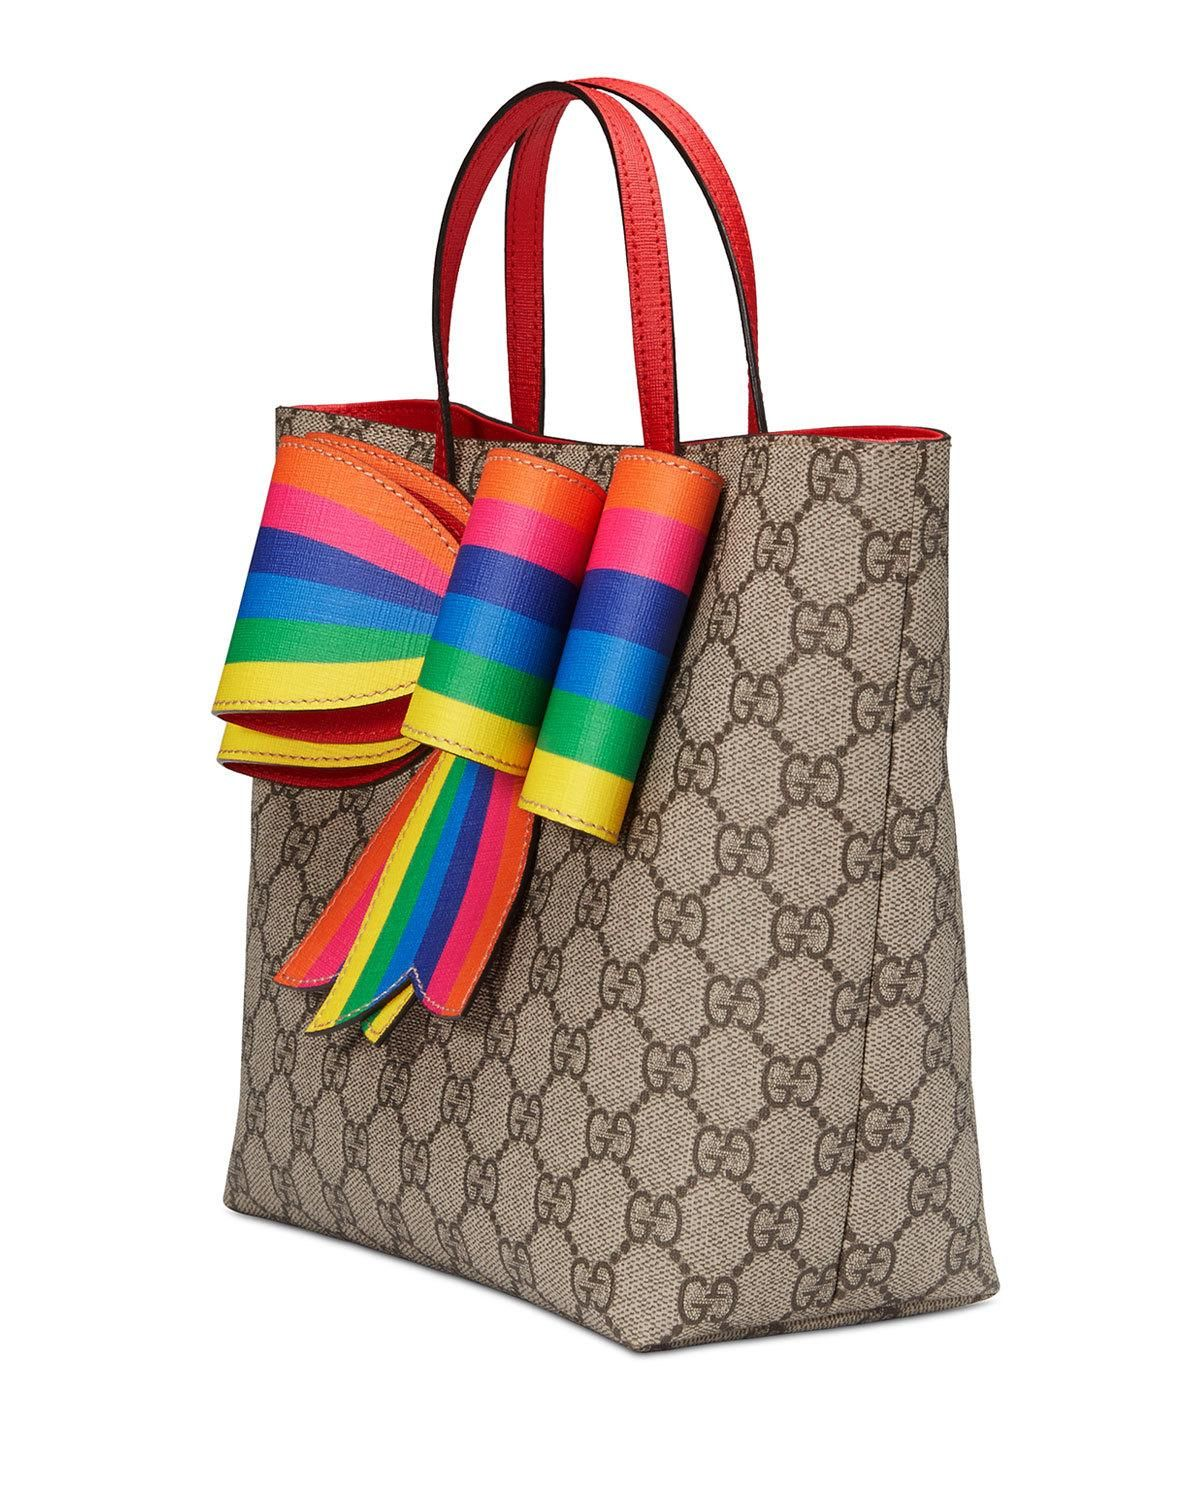 569487937641 Gucci GG Supreme Canvas Tote Bag w/ Rainbow Bow | Products | Canvas ...